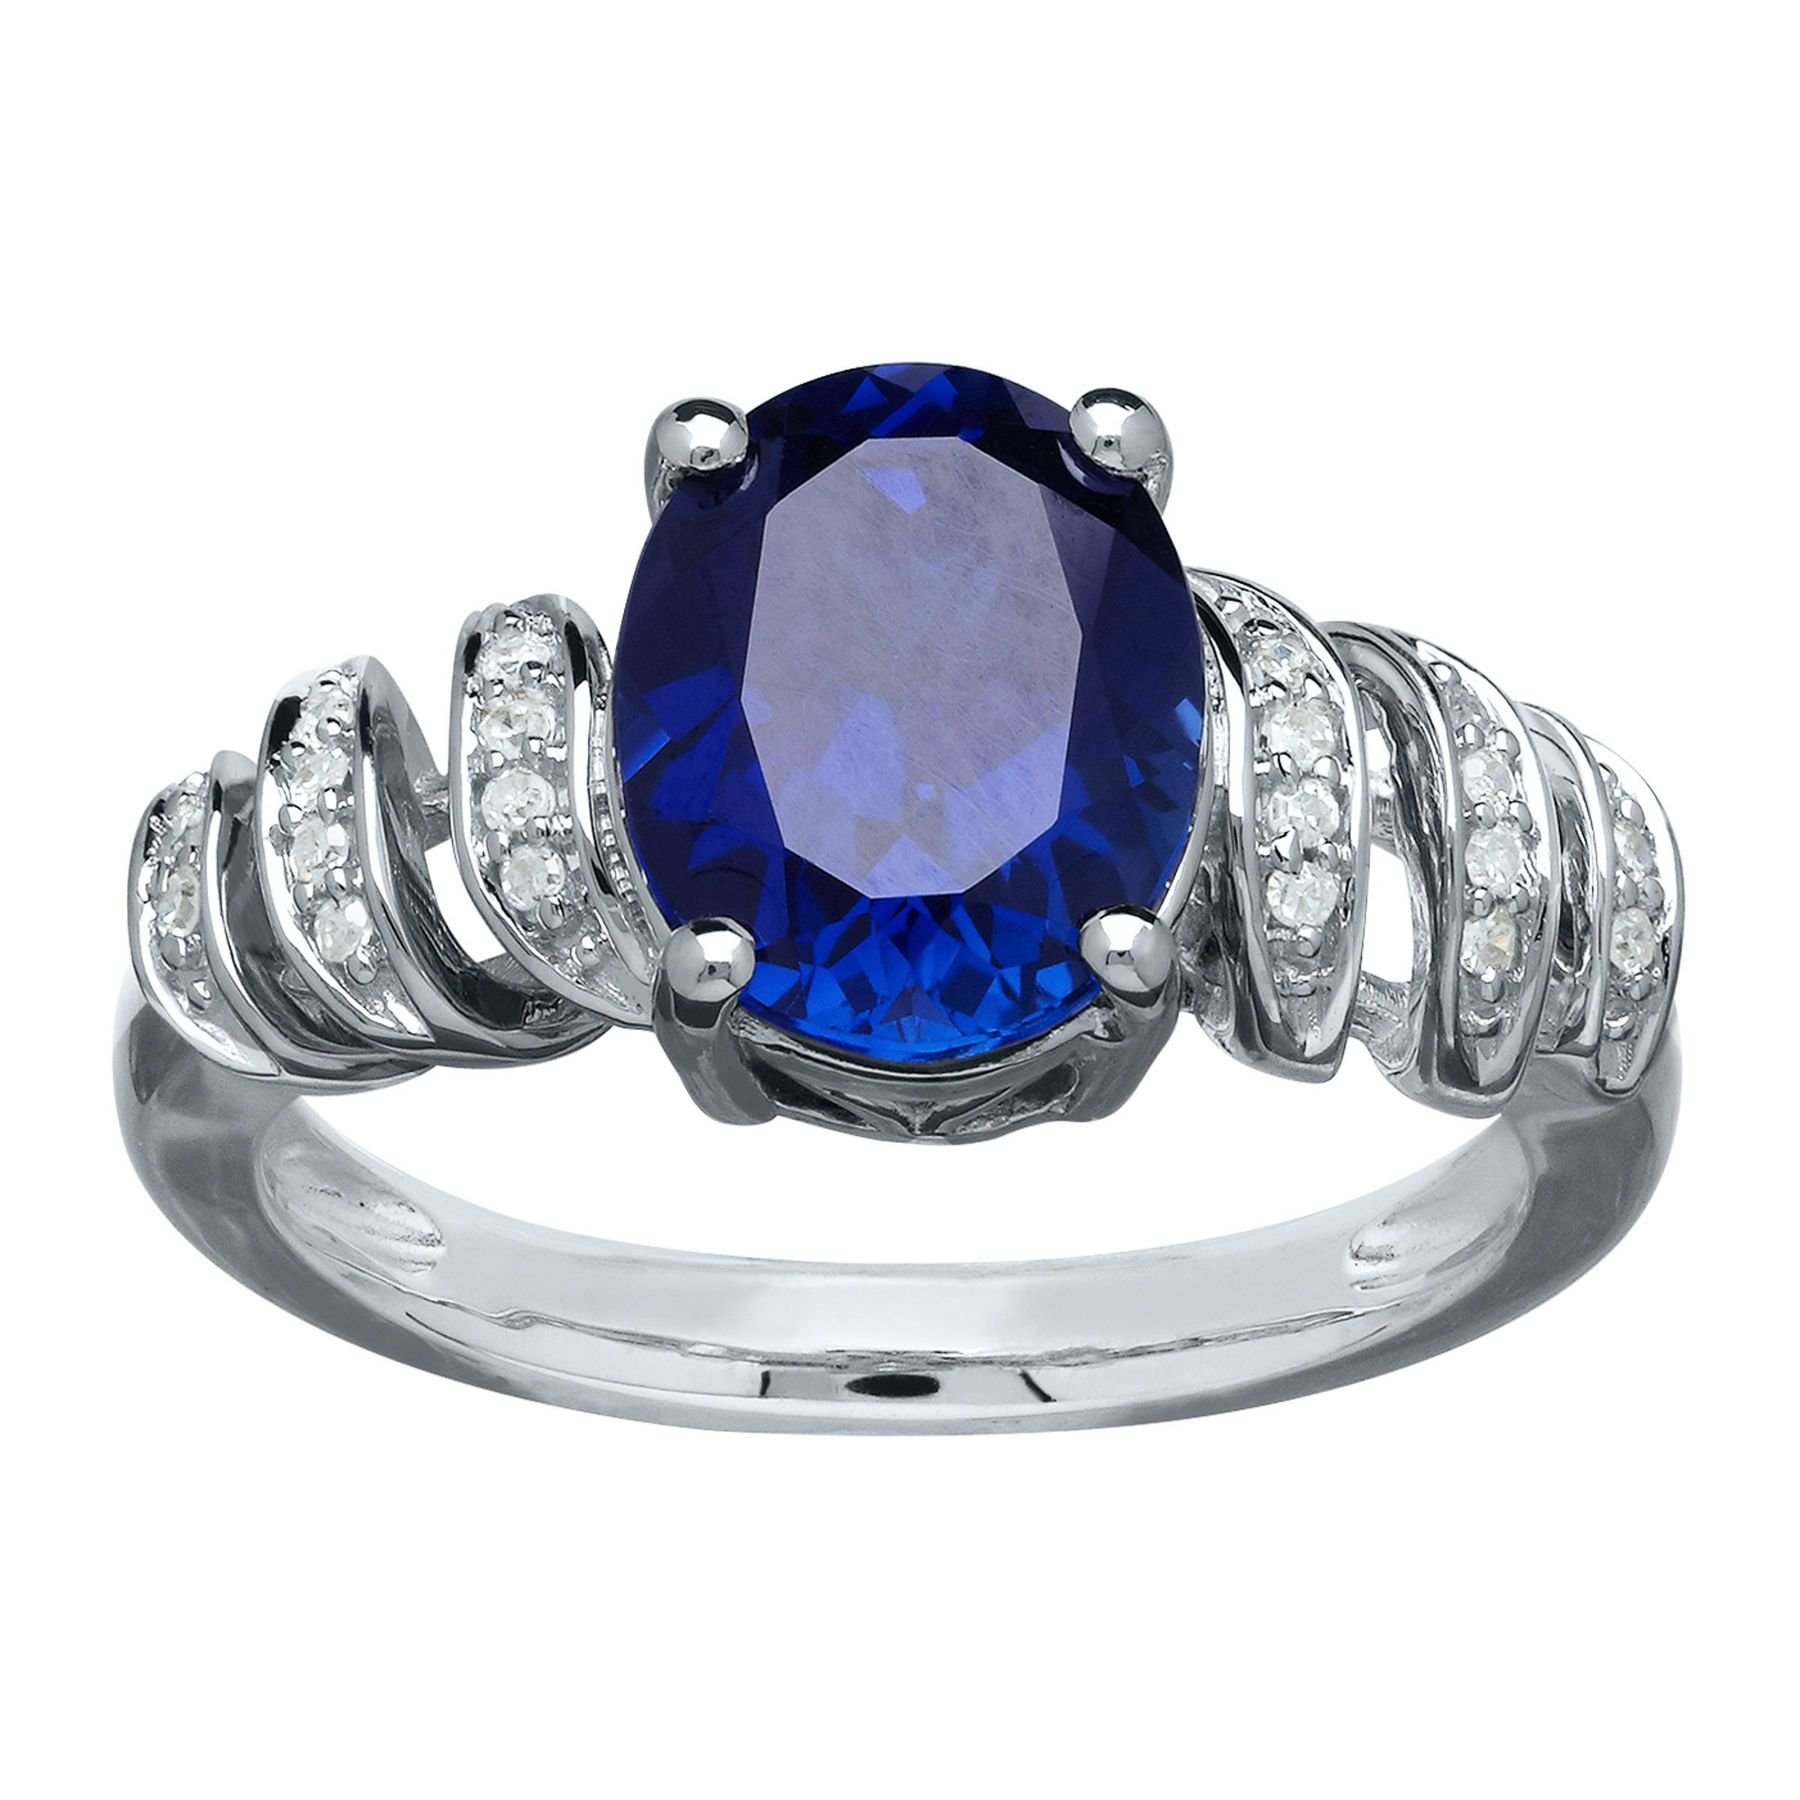 sapphire shipping product ring watches today boston band saffire jewelry diamonds white stackable blue bay overstock rings free gold